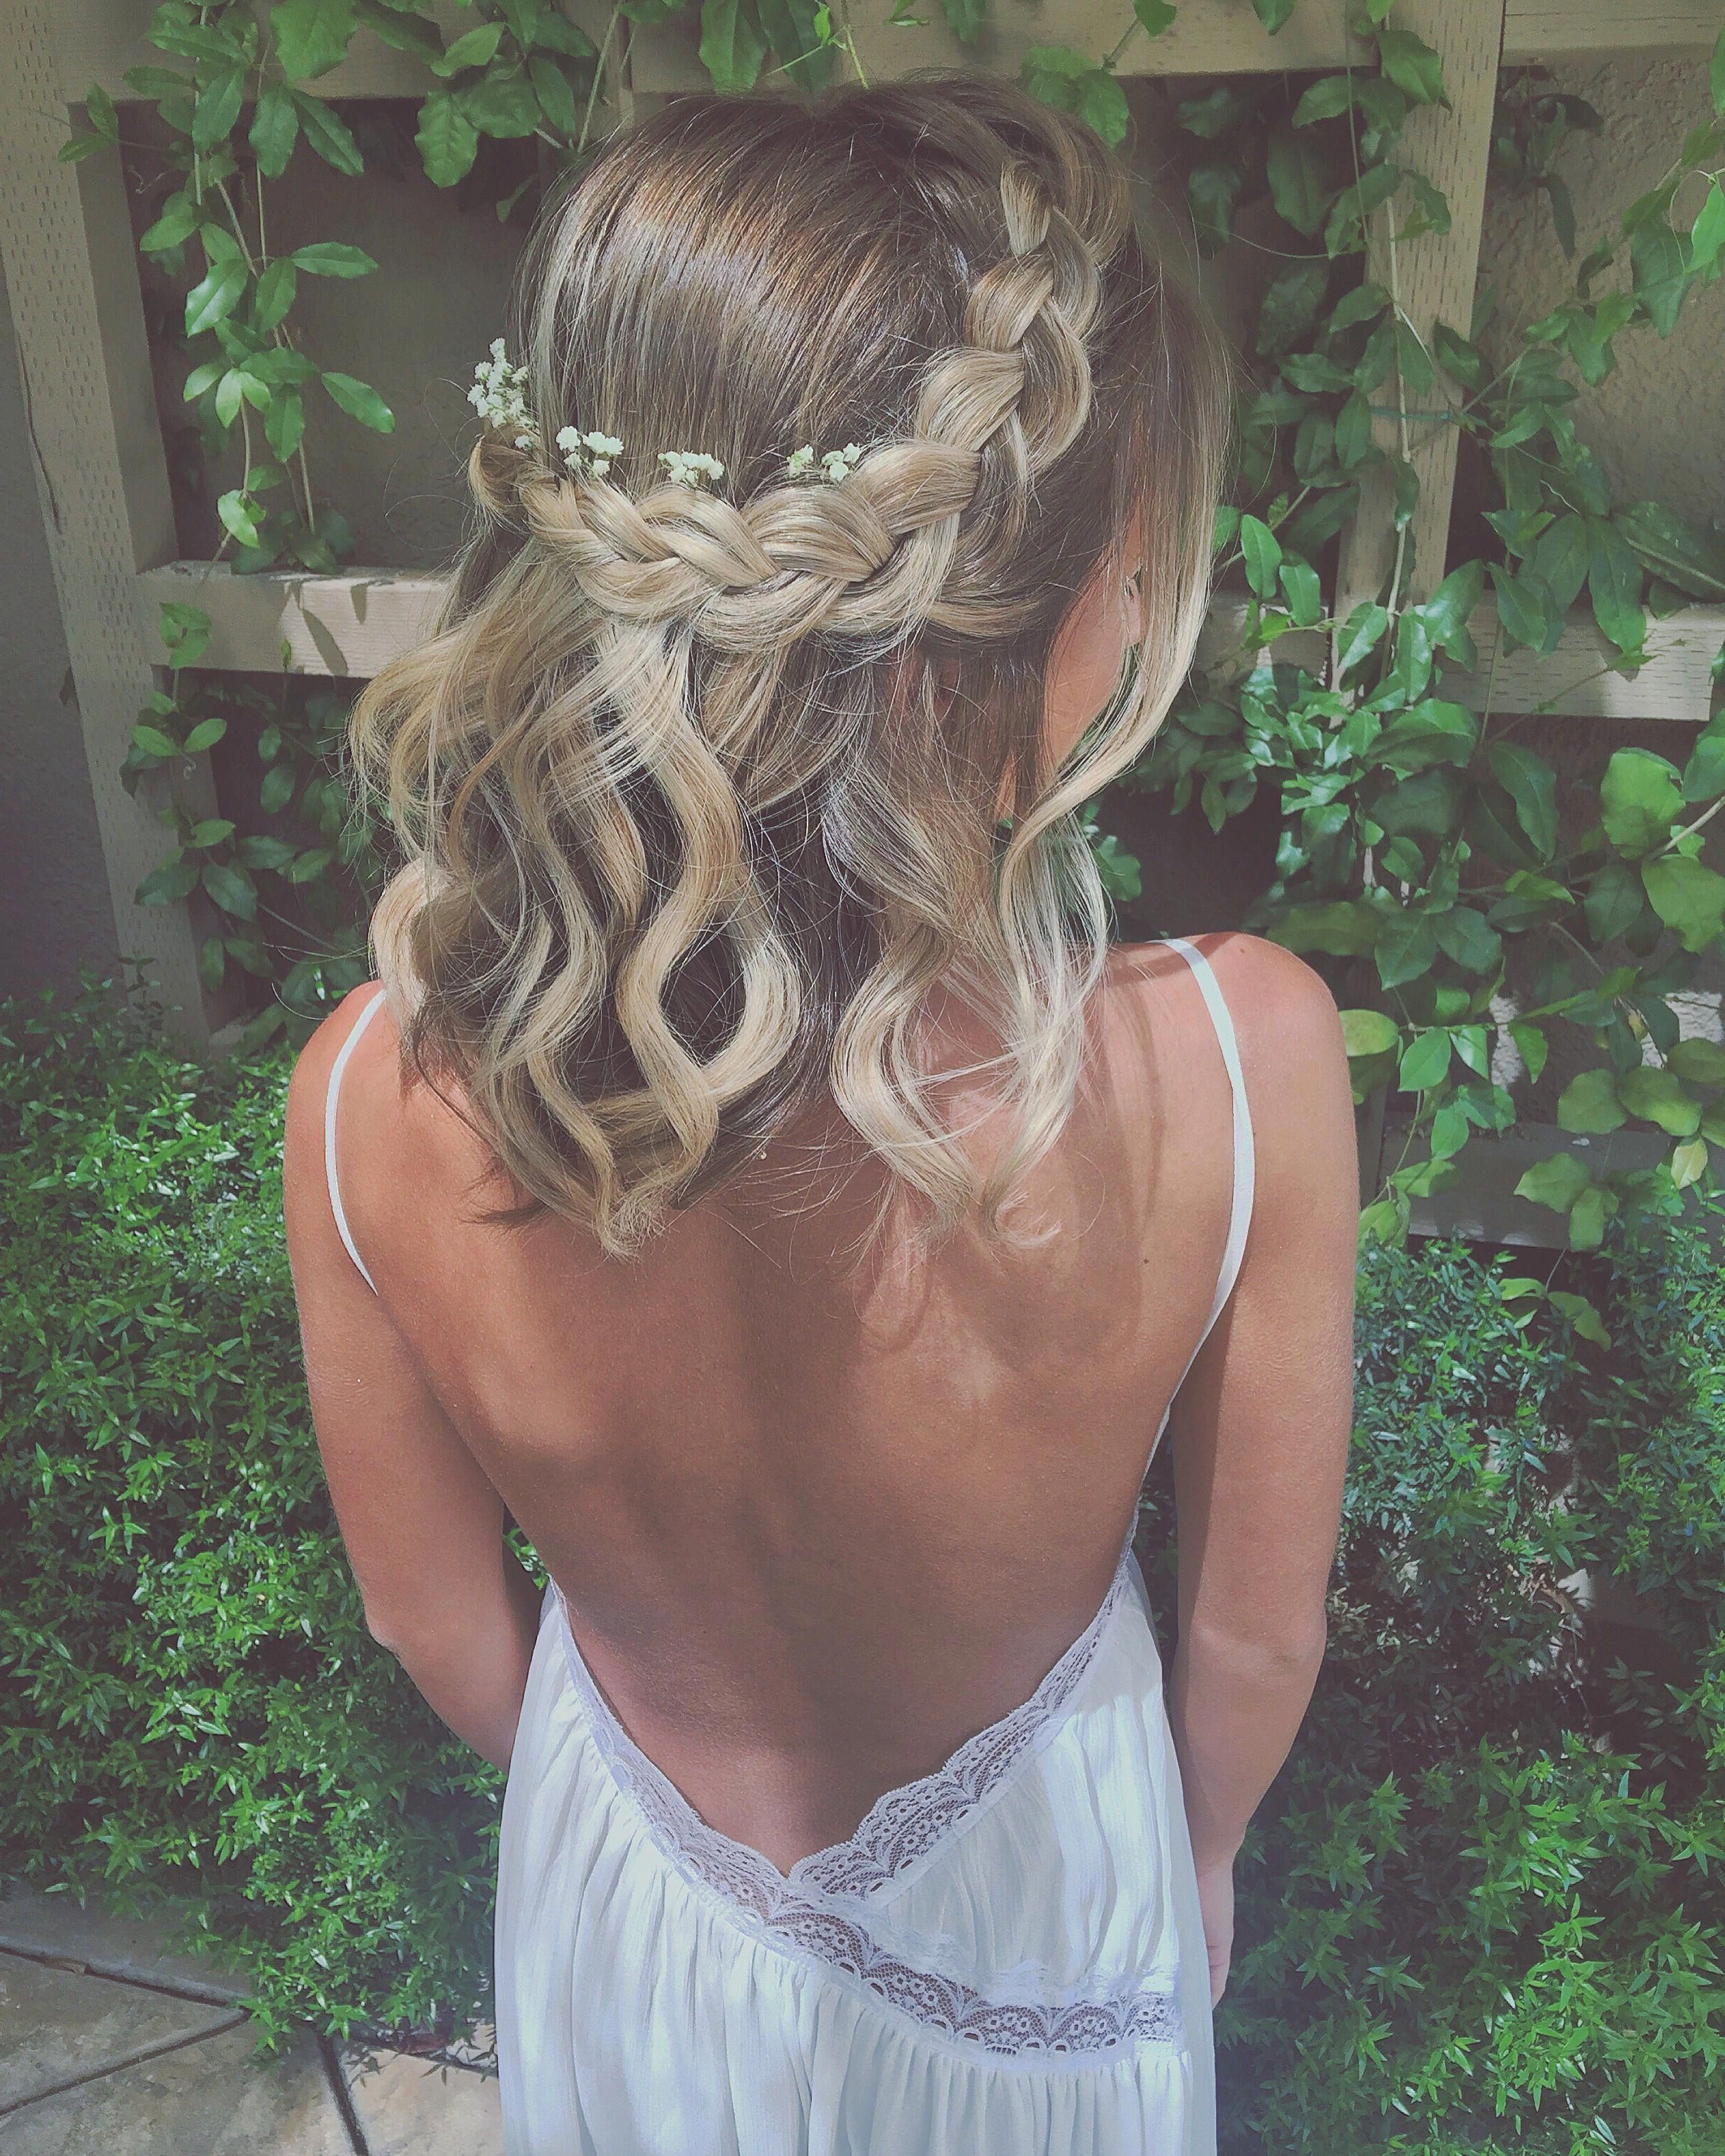 Braided Crown With Baby's Breath Flowers #braidedhairstyles (View 5 of 20)